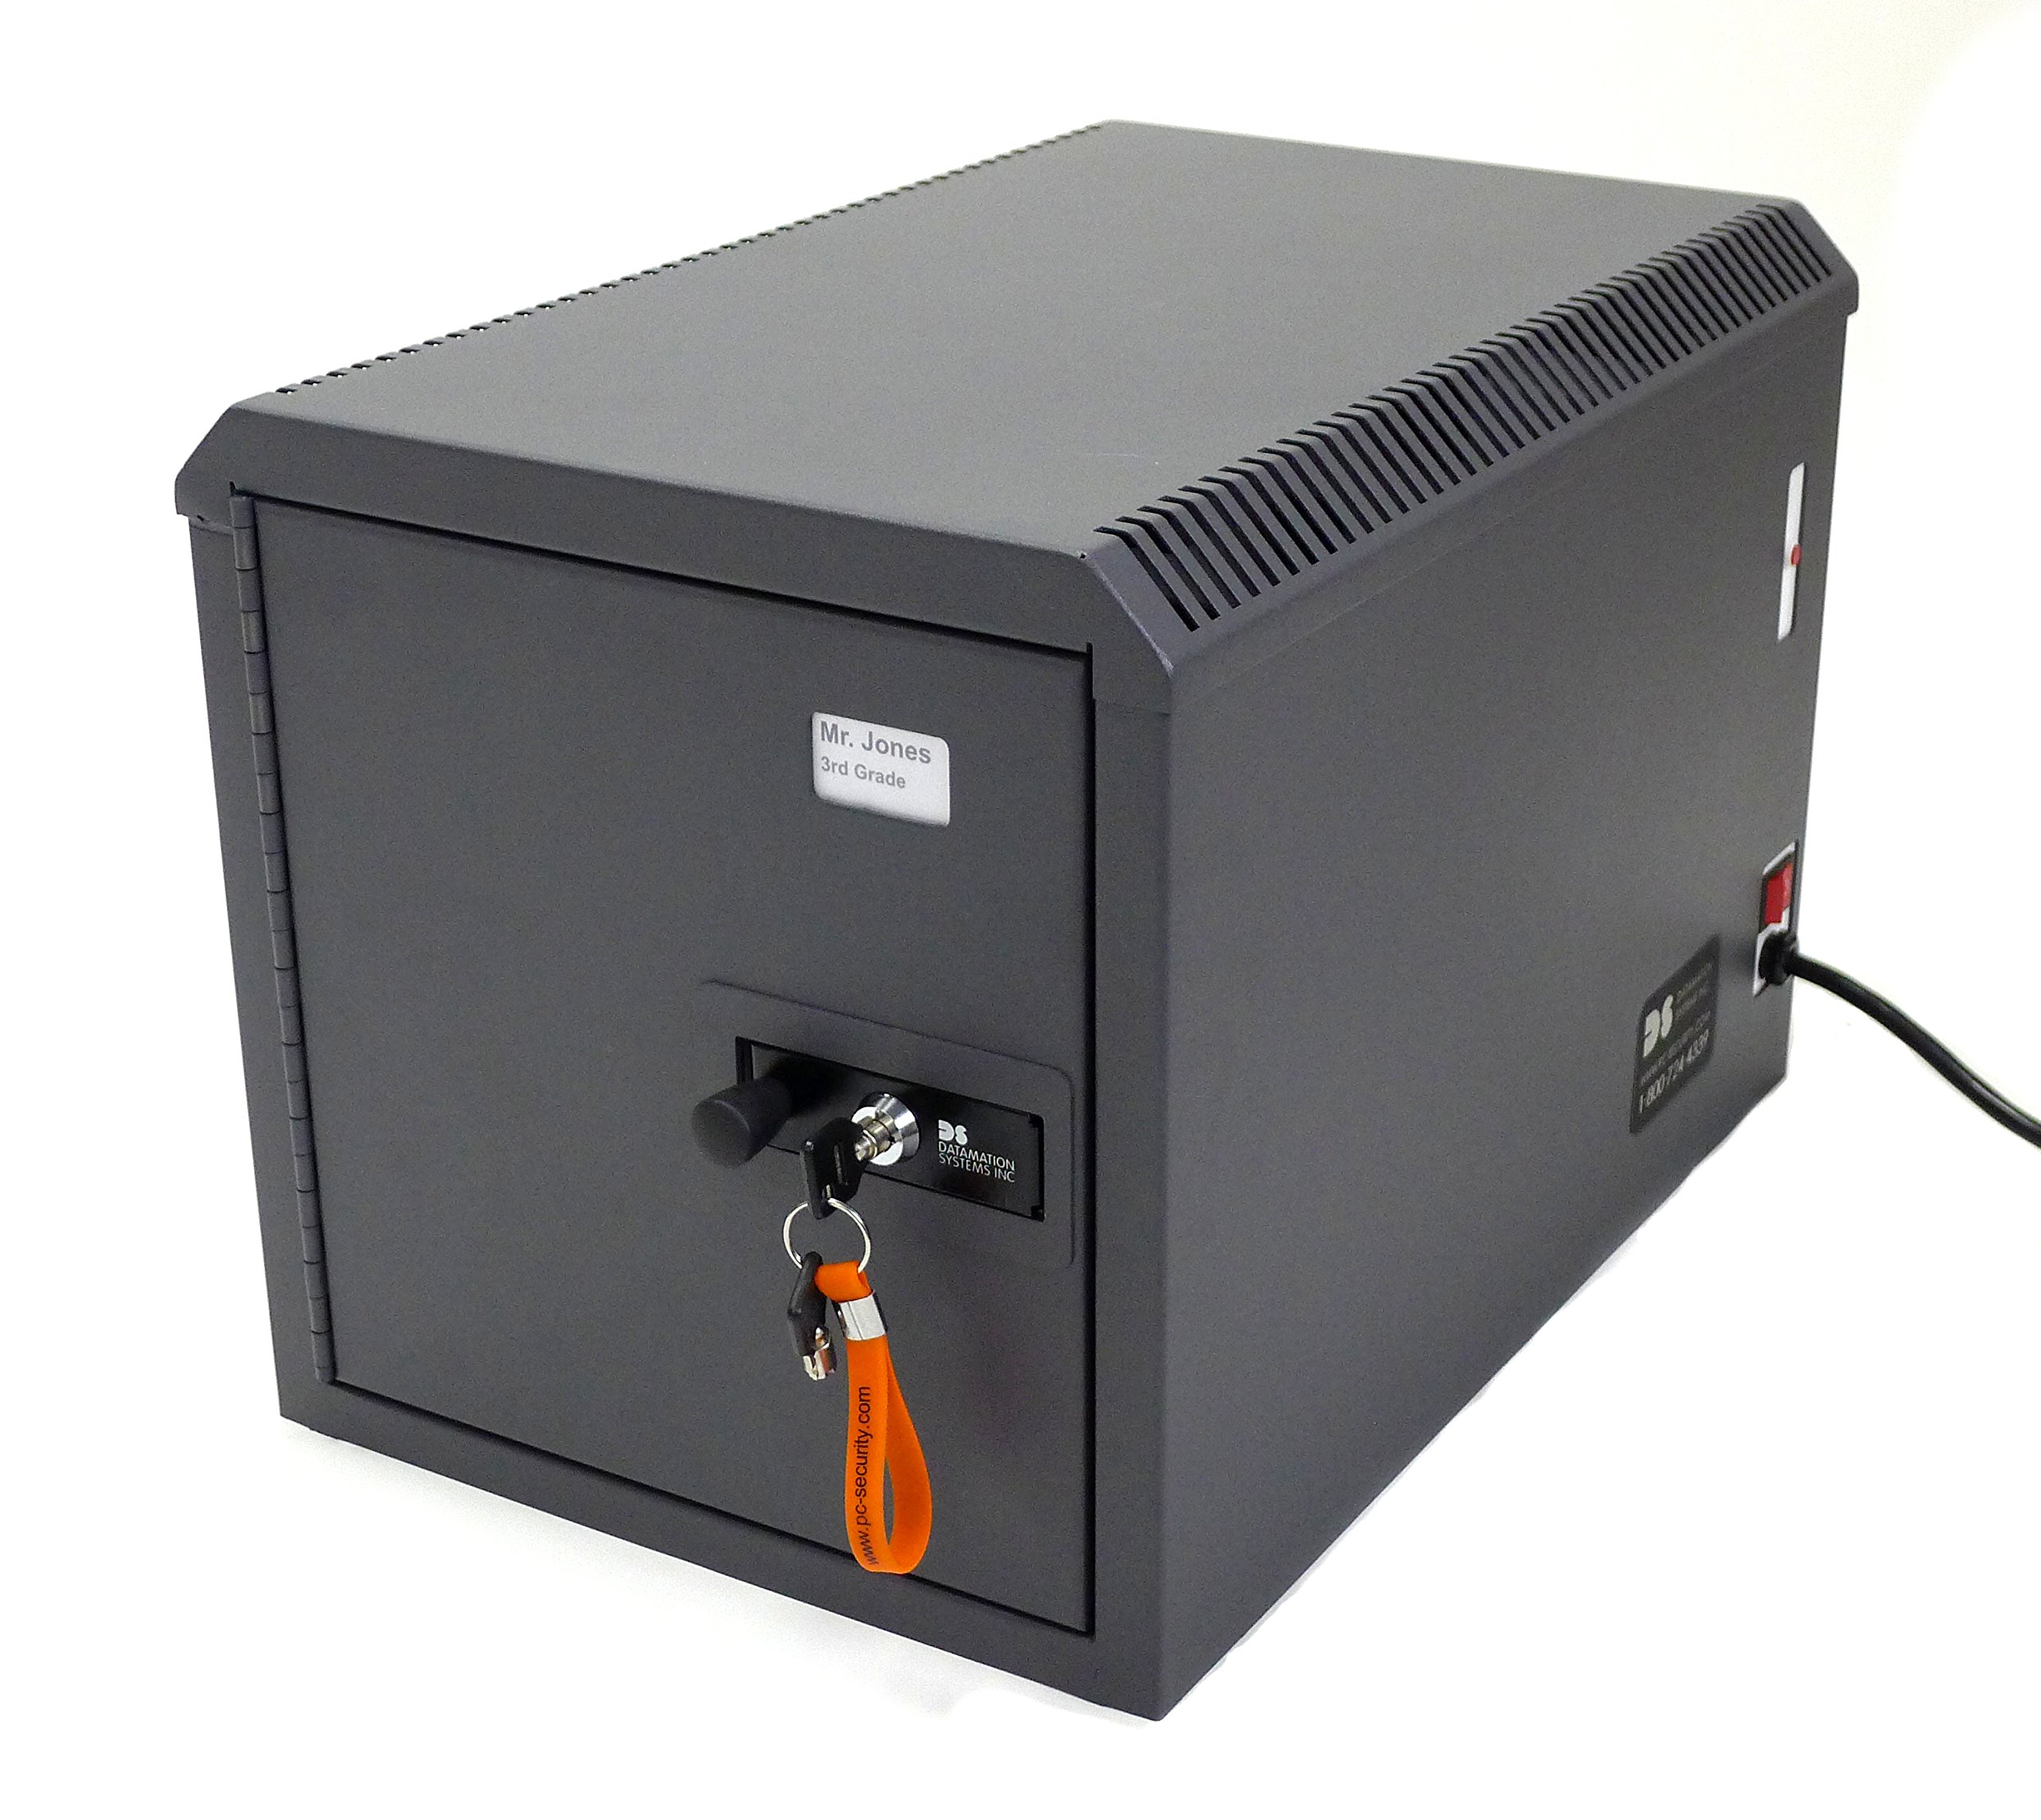 DS-Netsafe-C-8 Security Safe Charges and Secures 8 iPads or Tablets